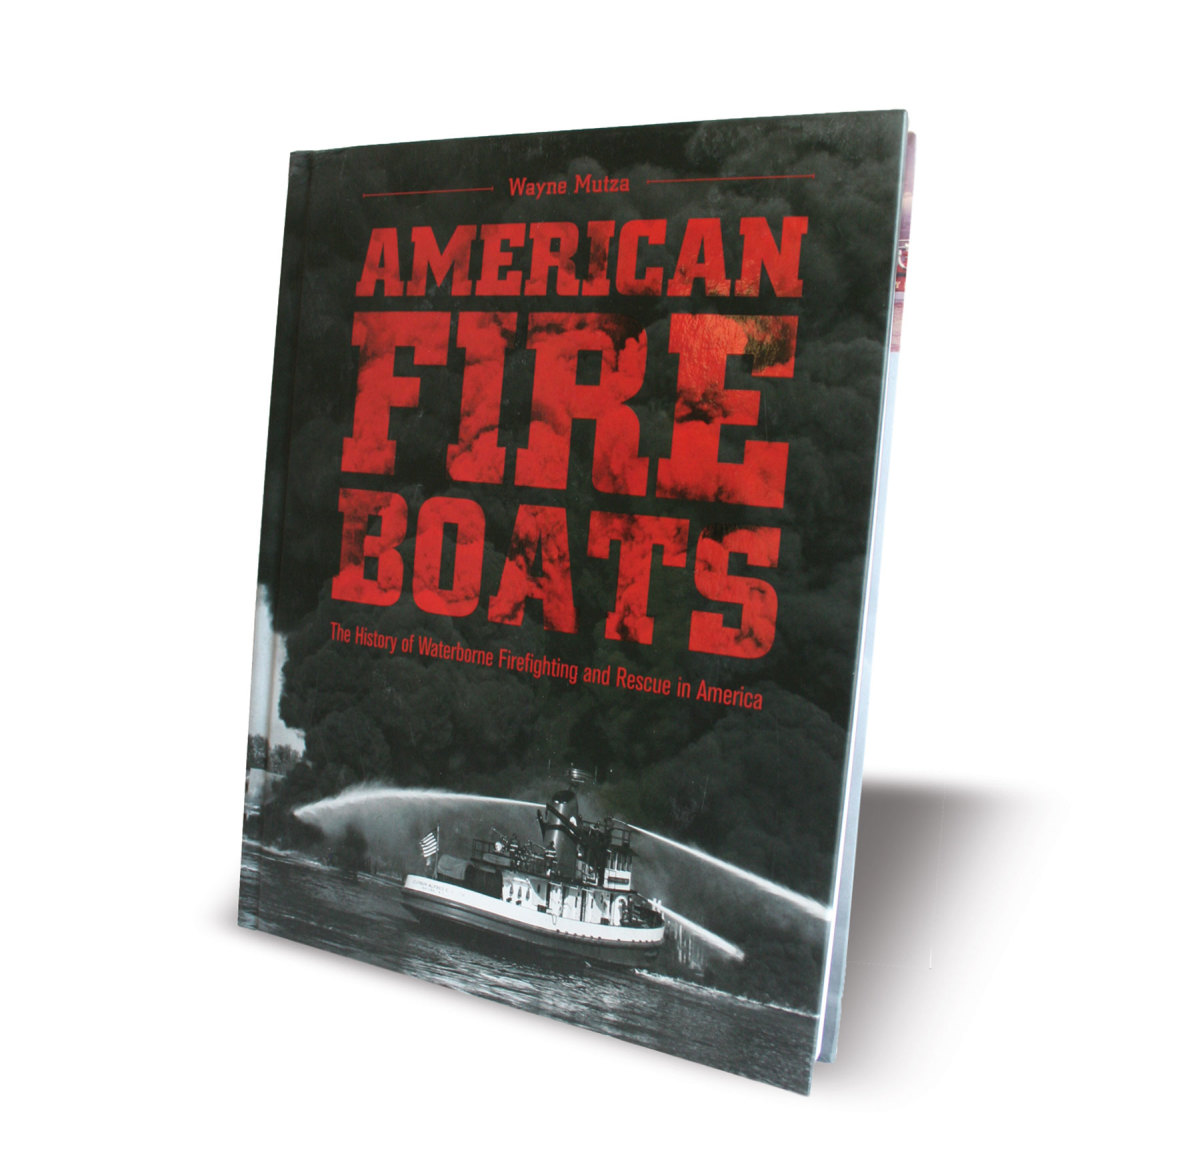 Photo of American Fire Boats book cover